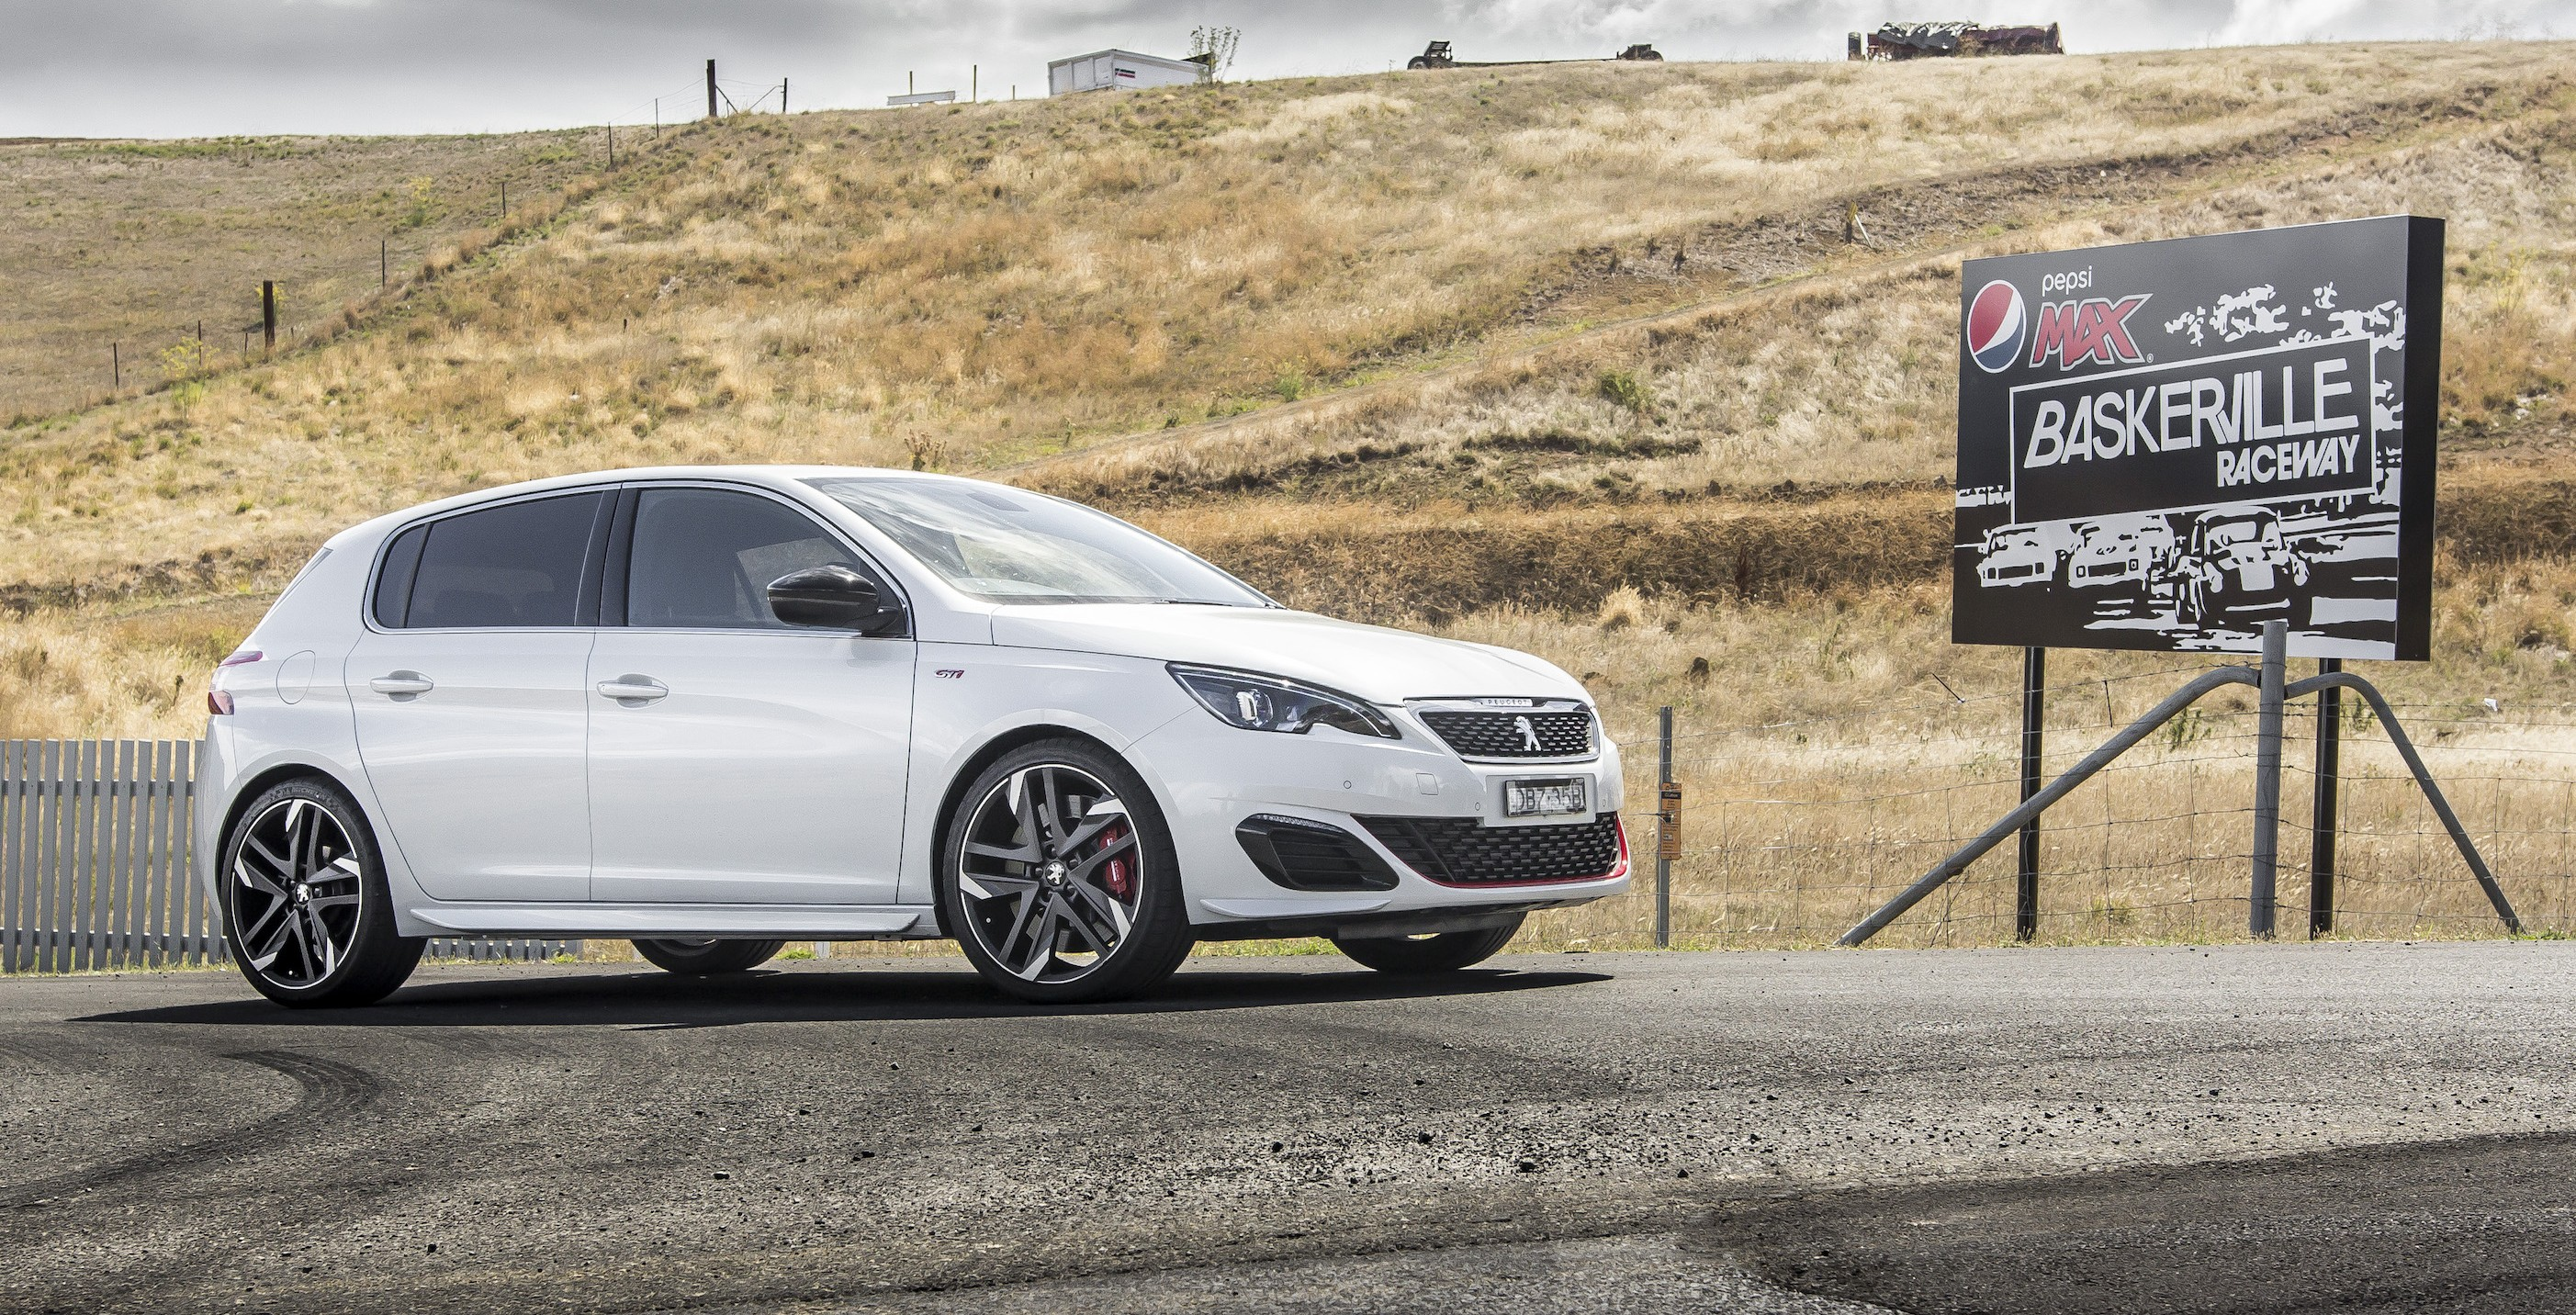 Awesome 2016 Peugeot 308 GTi Review  CarAdvice